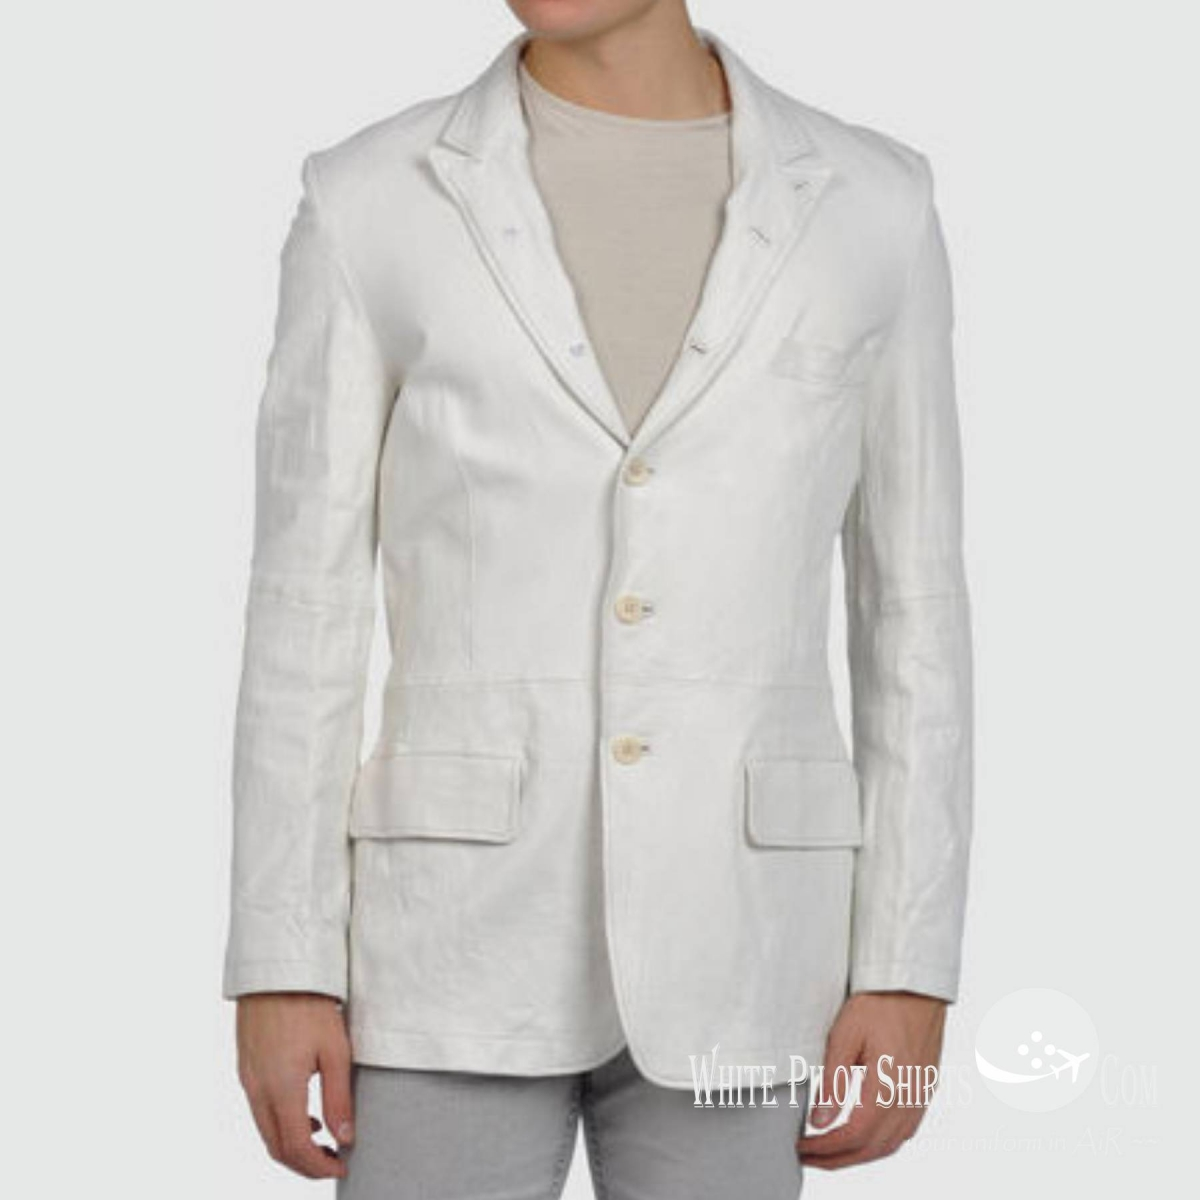 5 suit style jacket white leather jackets men 39 s for Mens white leather shirt